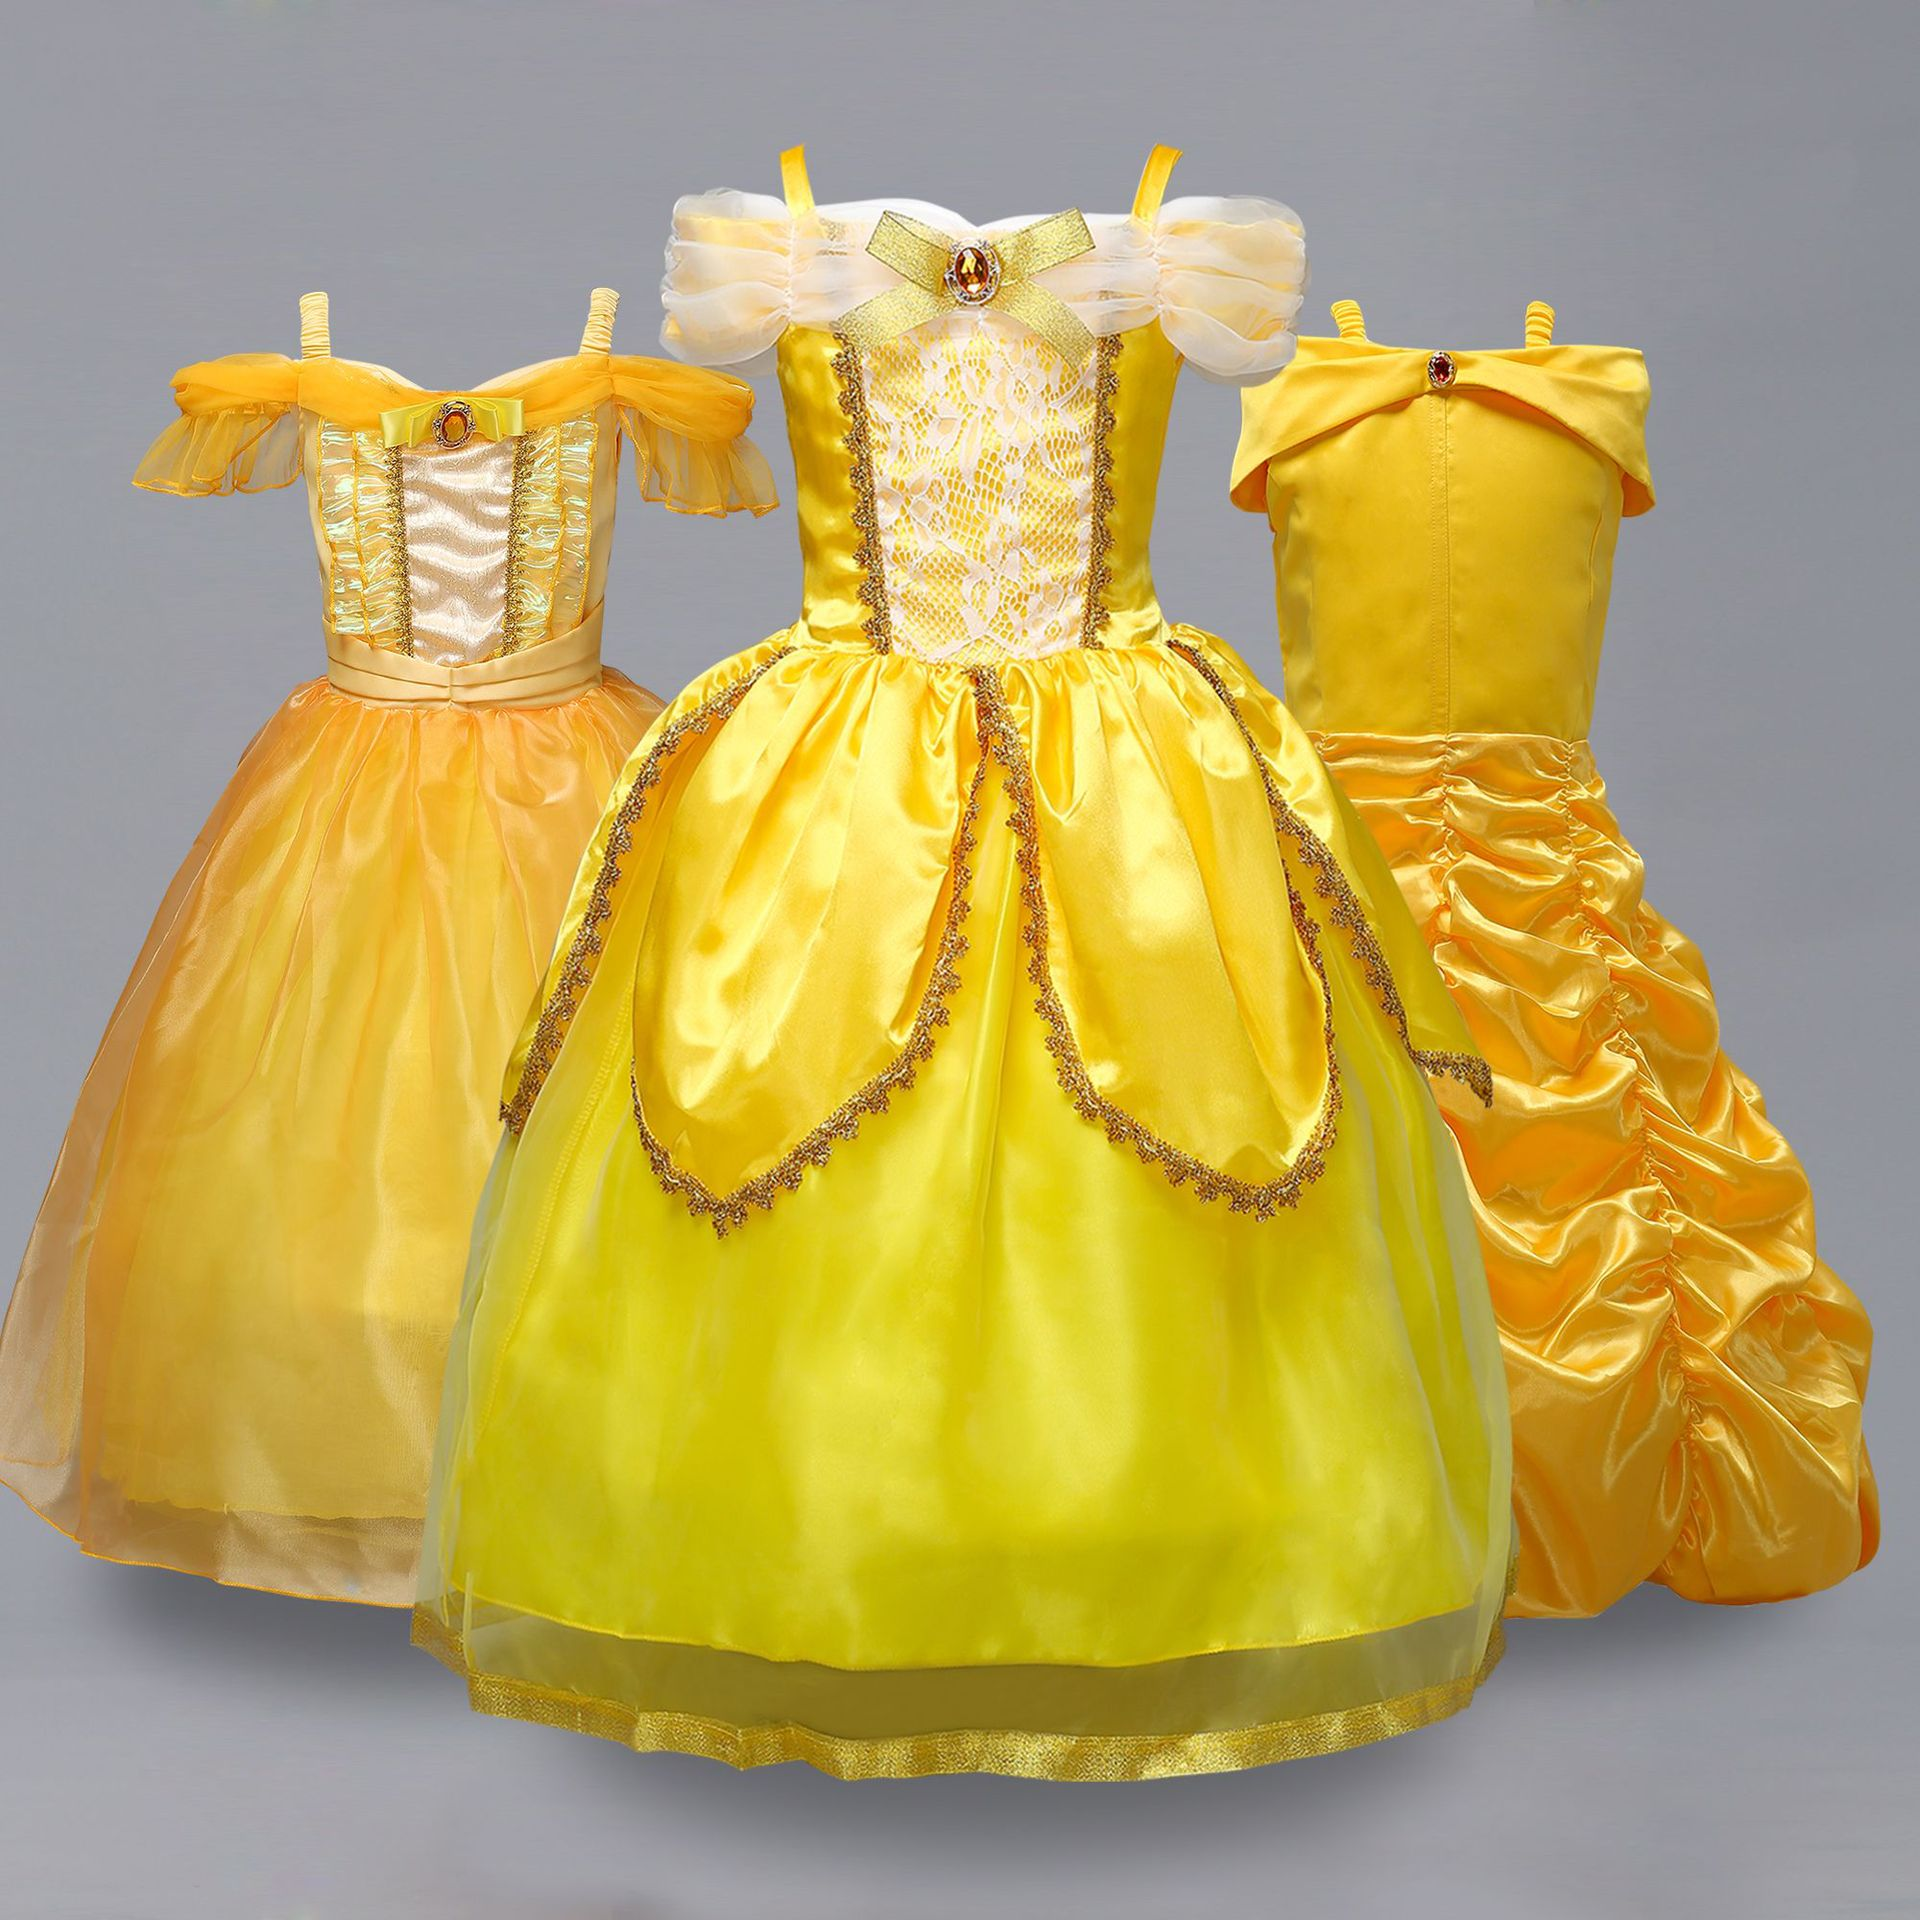 Europe And America Children Camisole Million Christmas Princess Belle Dress Beauty And The Beast Cosplay Anime Costume